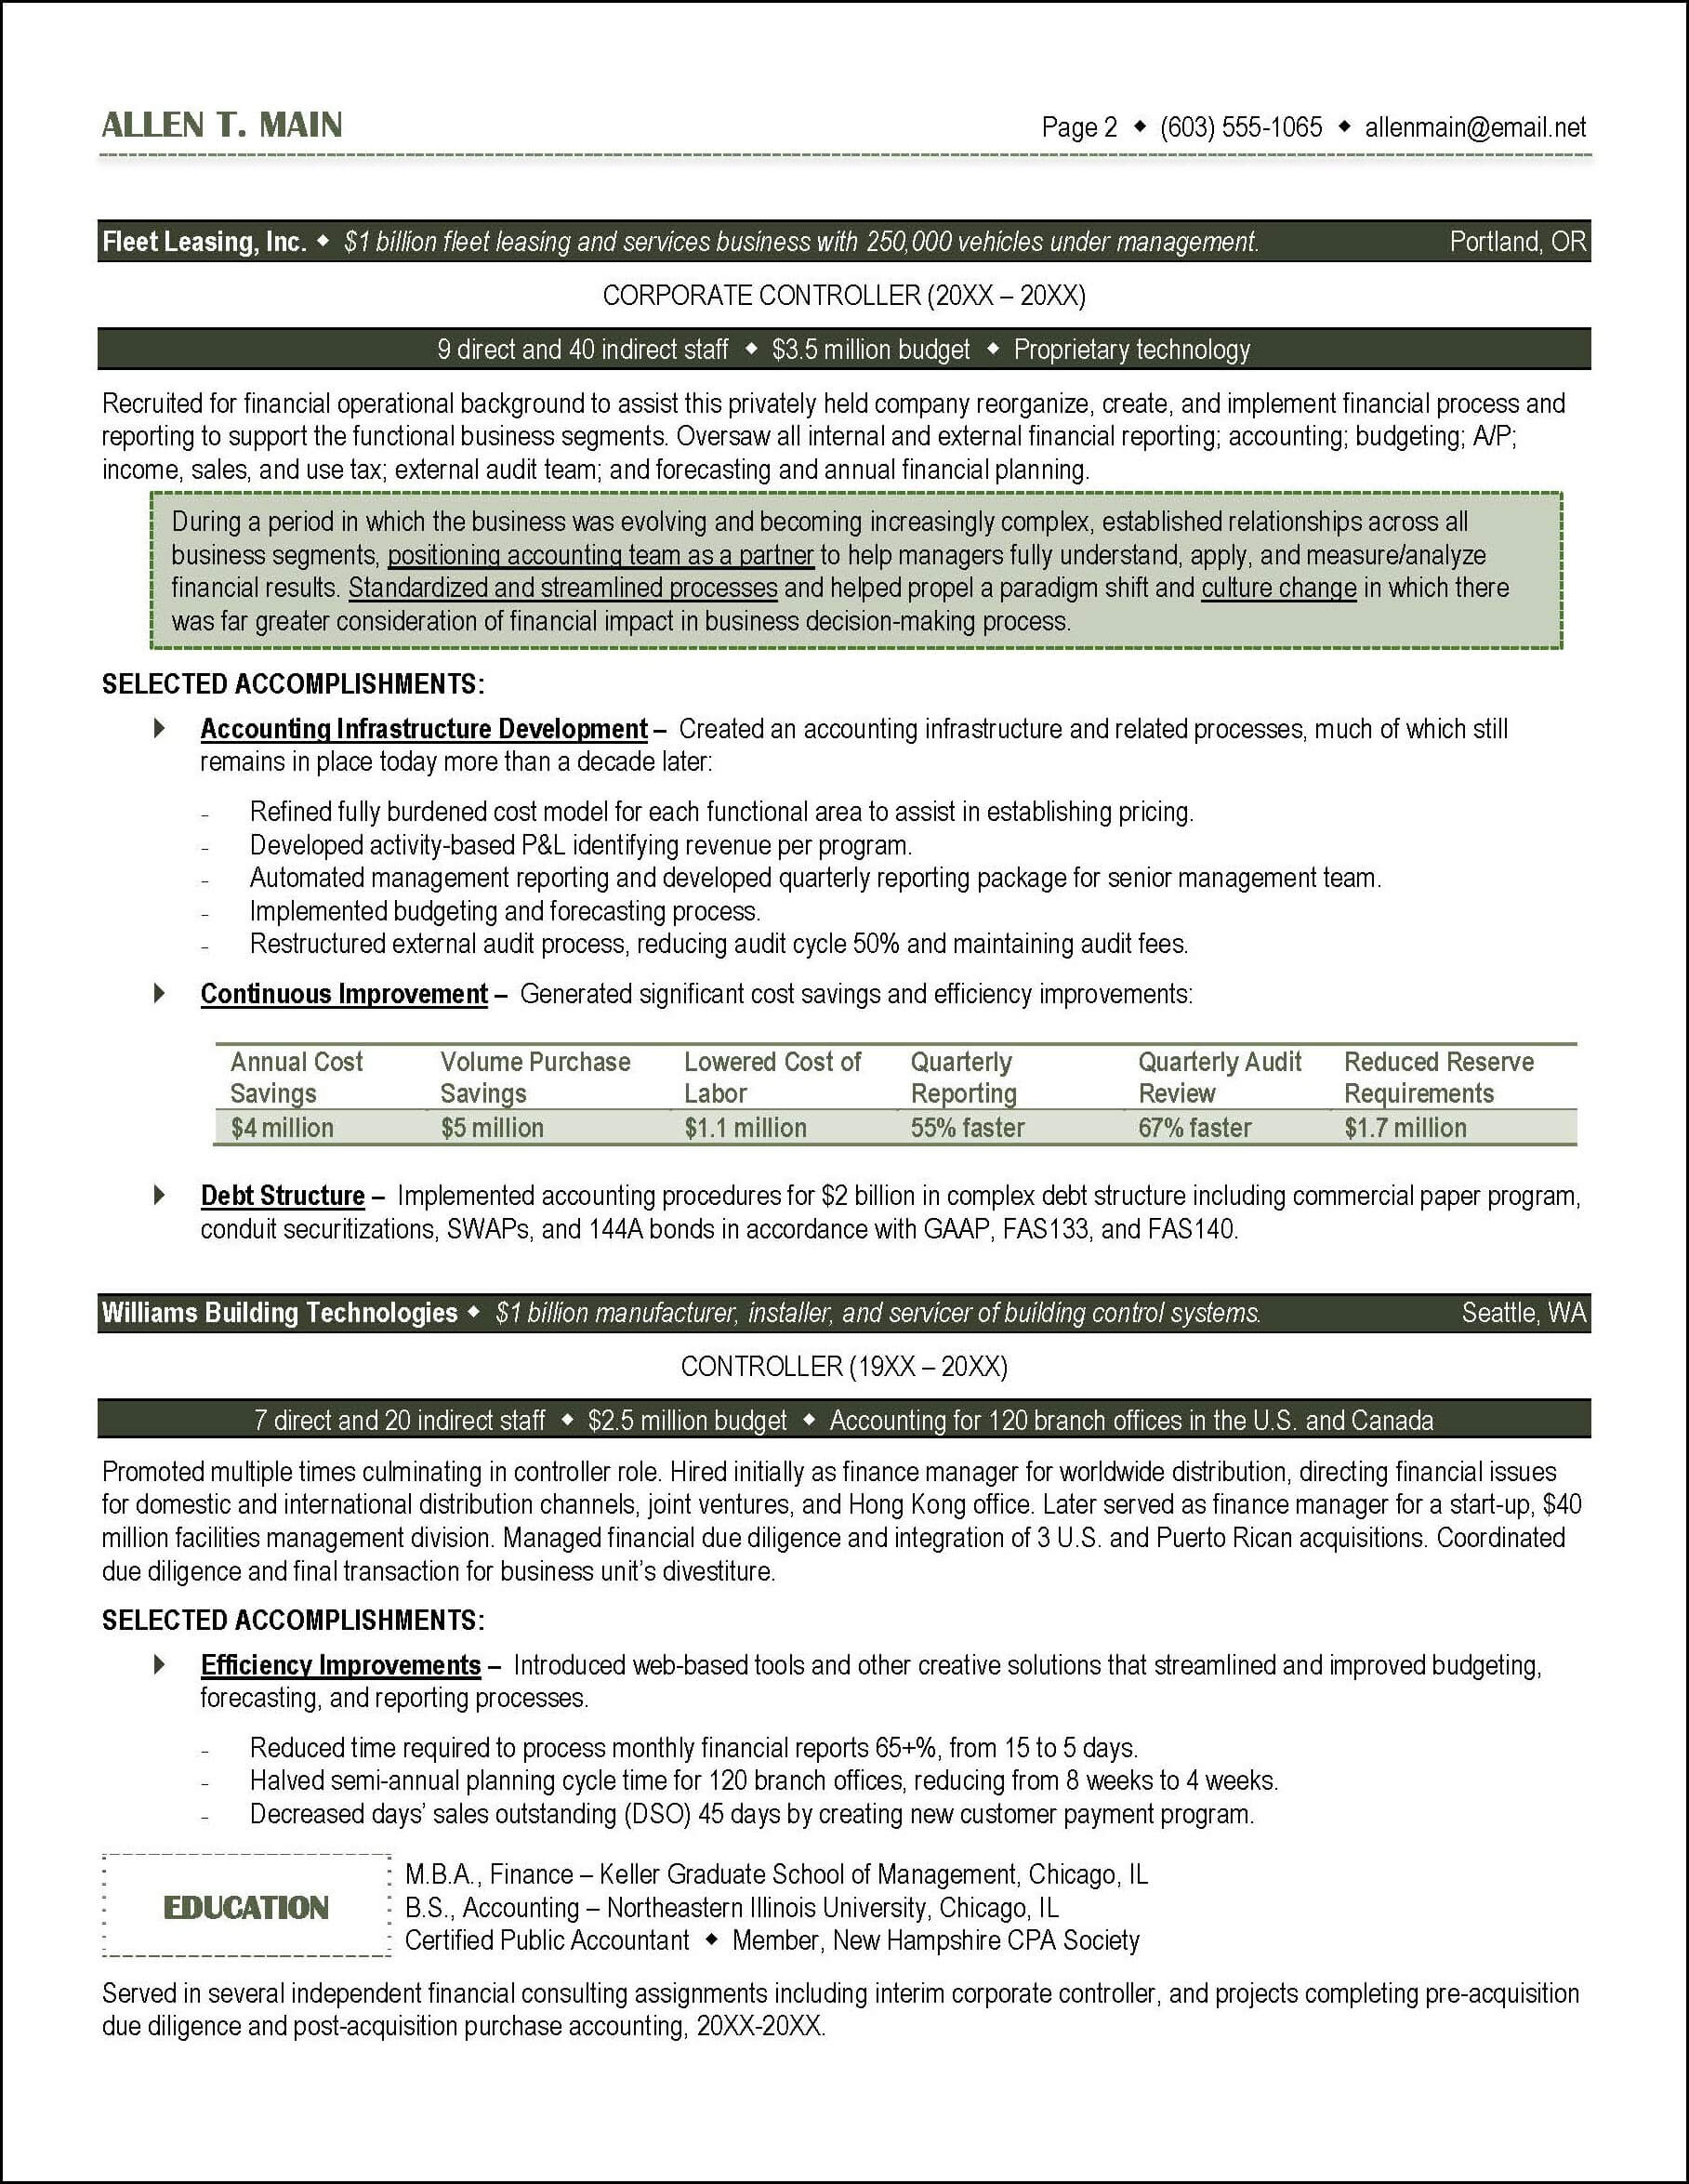 Accounting Resume Example | Distinctive Documents